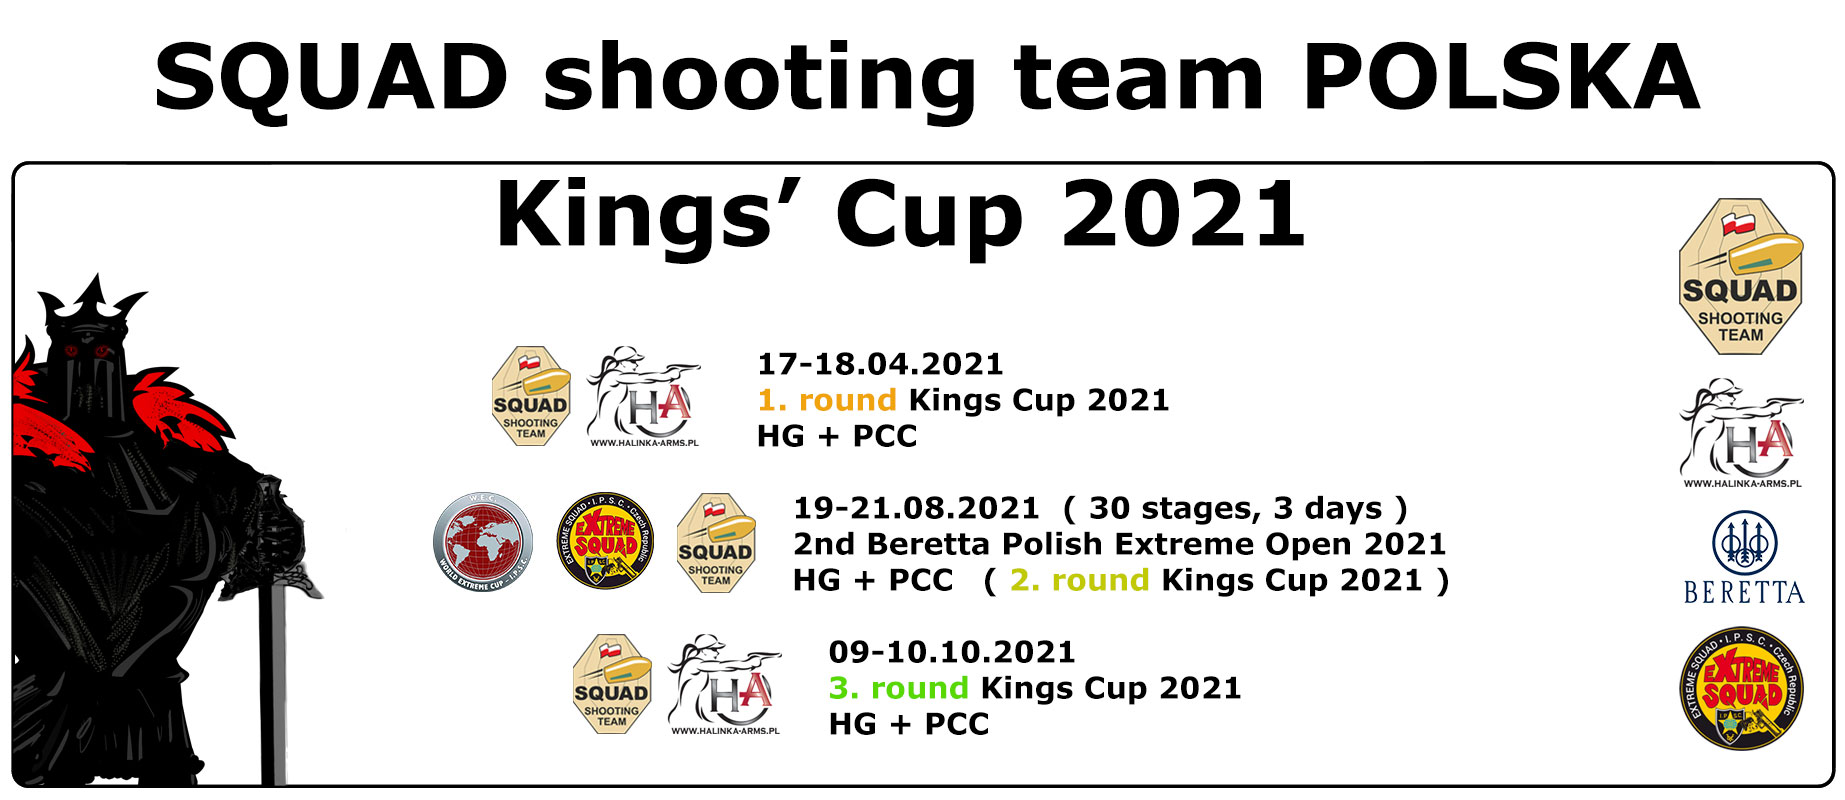 Kingscup 2021 dates